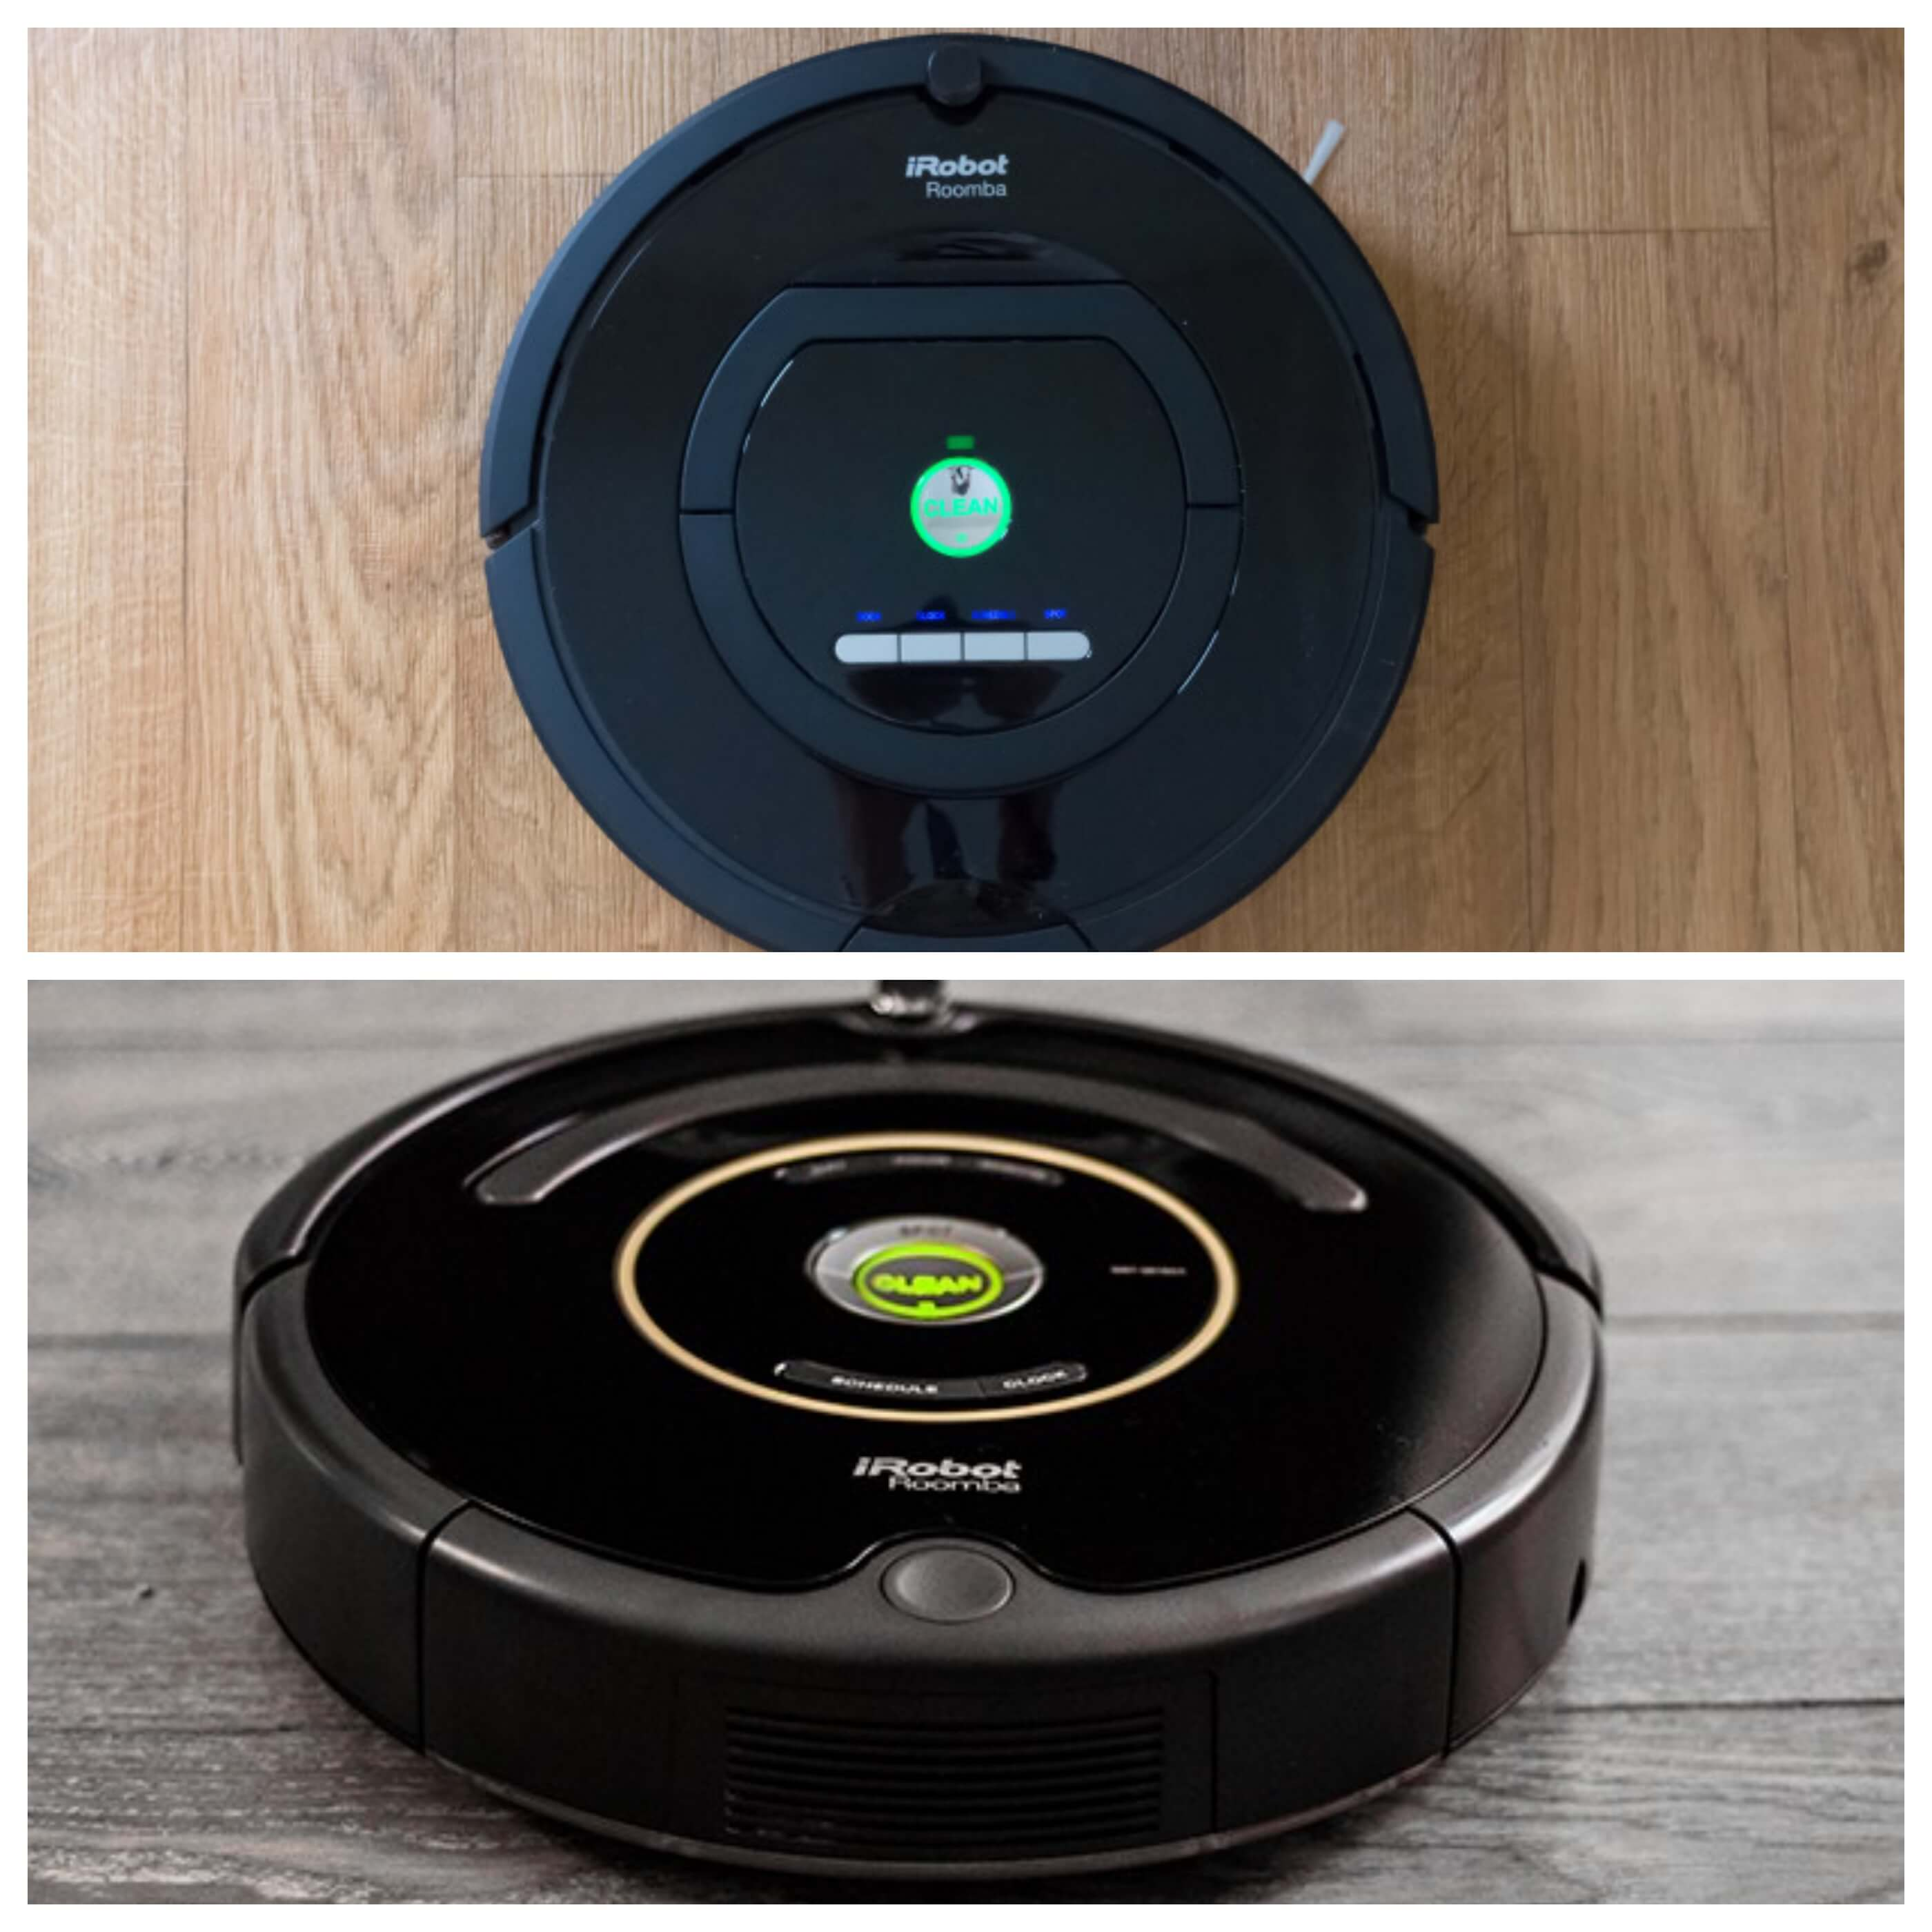 ... Roomba Hardwood Floors Scratches By 100 Irobot For Hardwood Floors  Roomba 890 Robot Vacuum ...